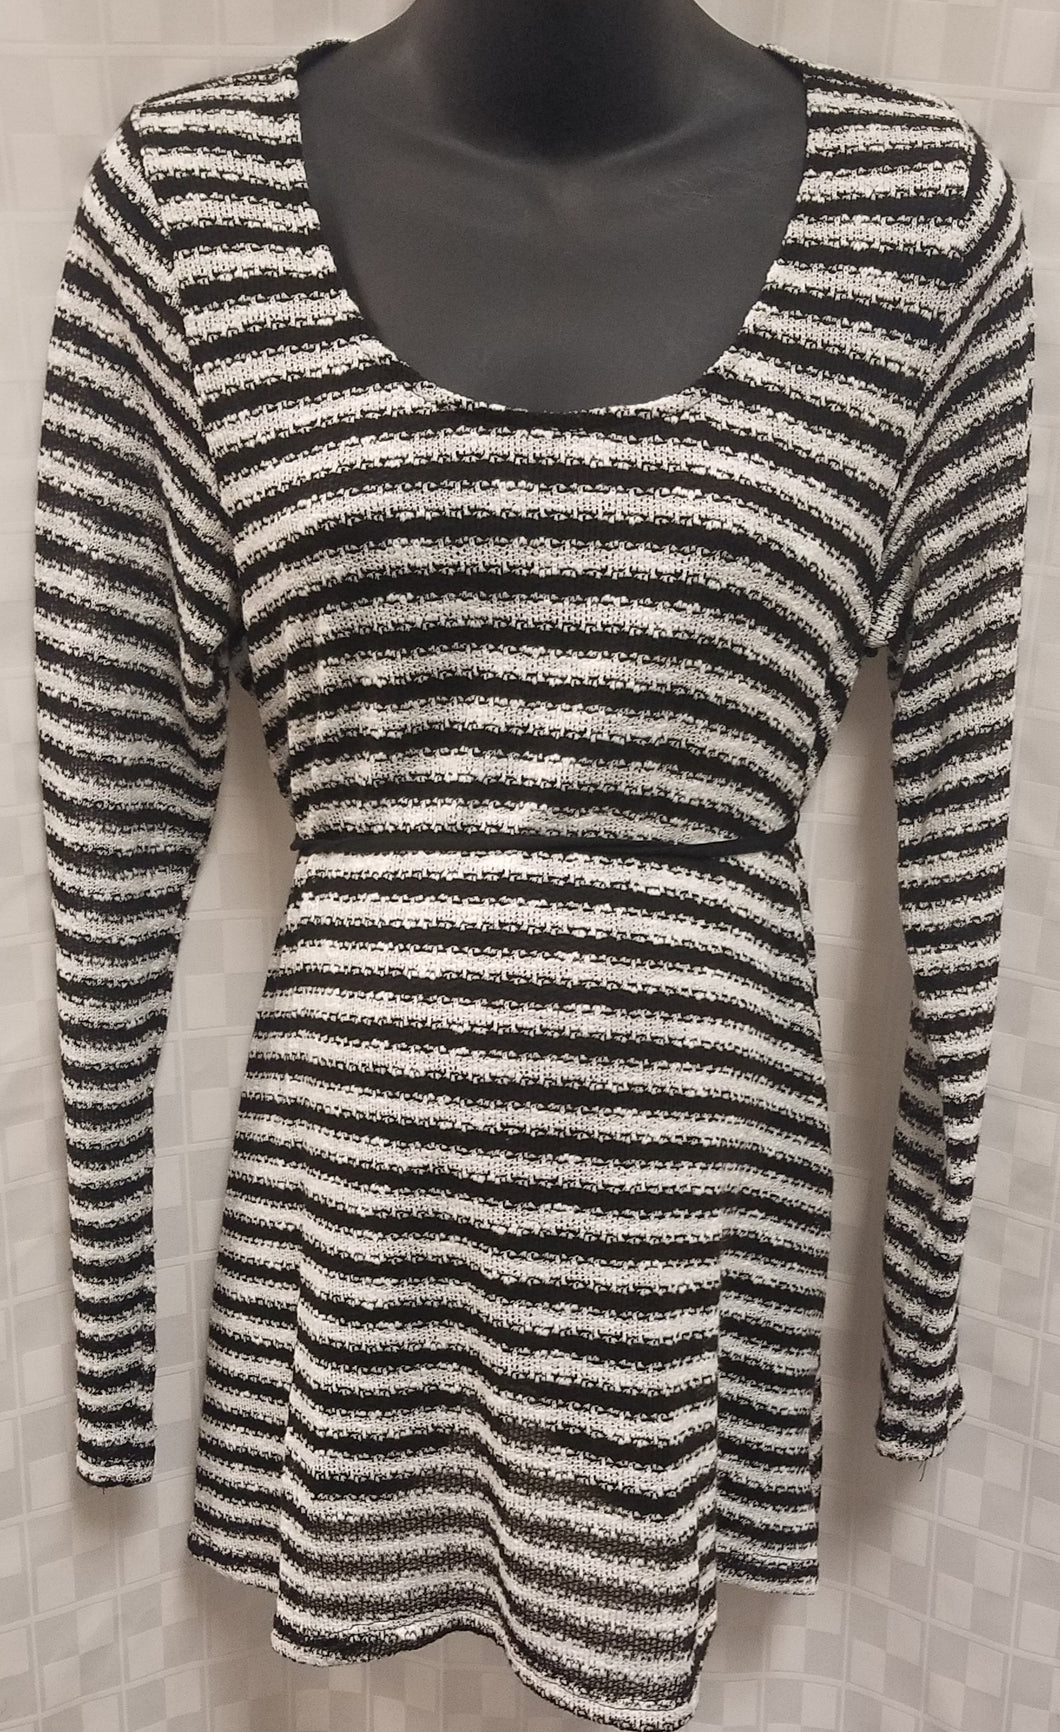 Large Black & White Long Sleeve Light Knit Pull Over Maternity Top